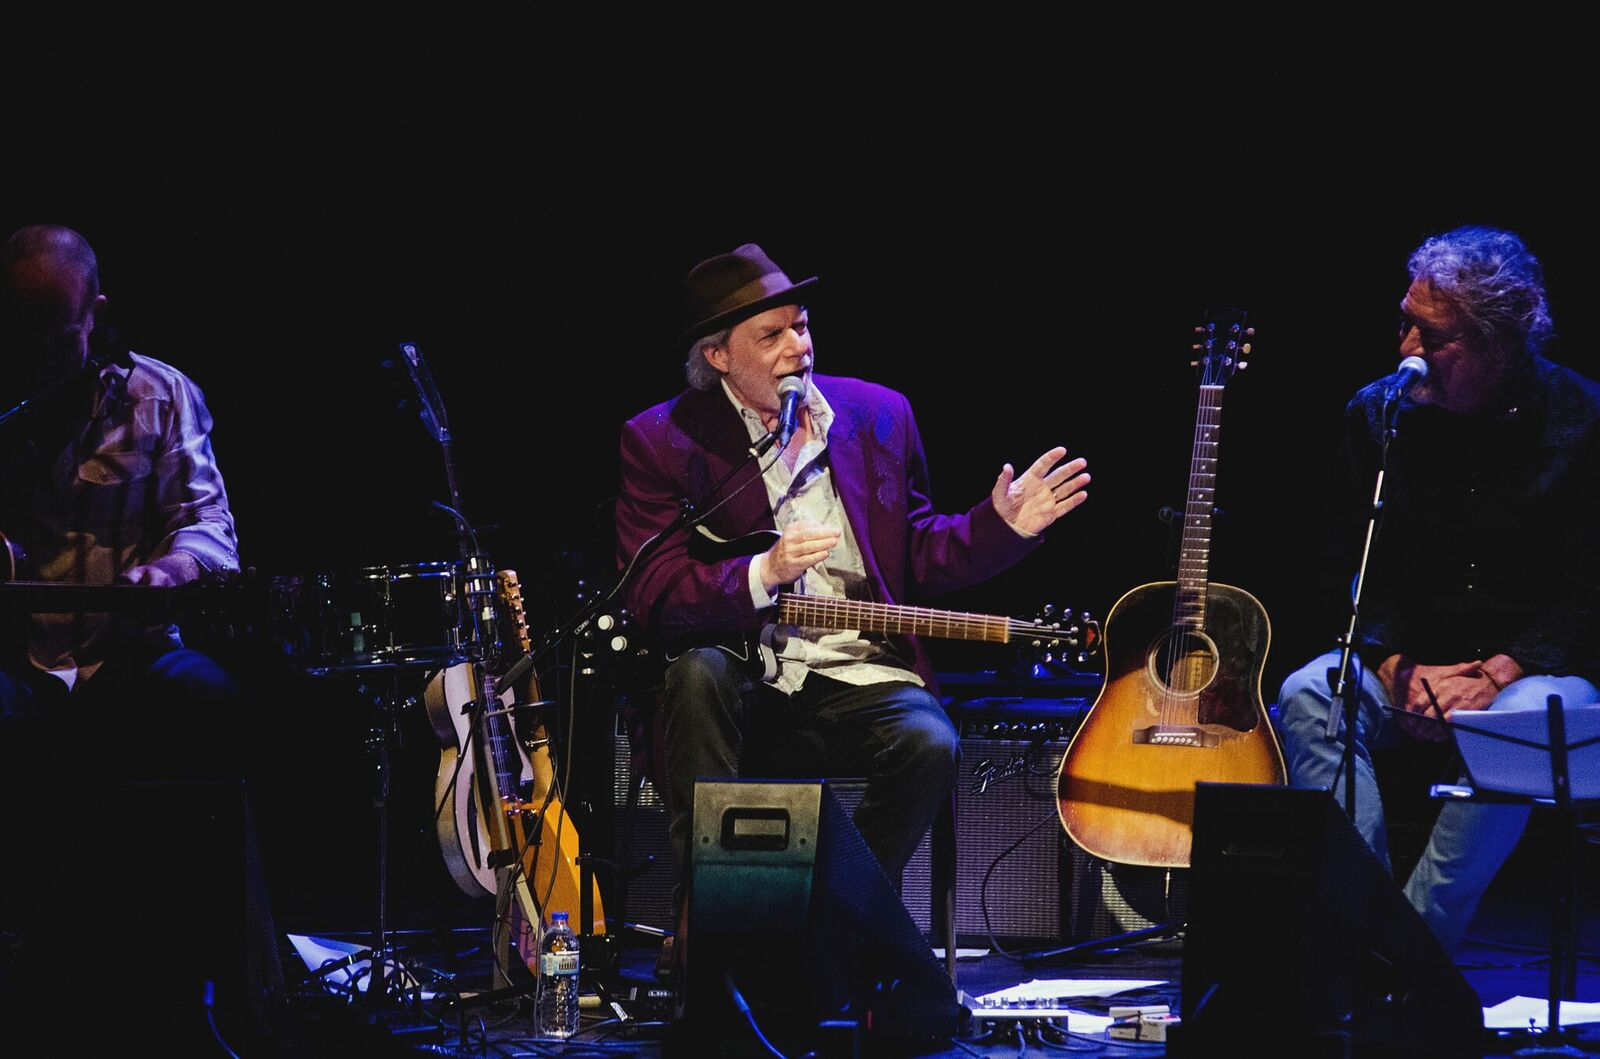 Buddy Miller at the mic (Photo by Jesse Lee, Marquette University)